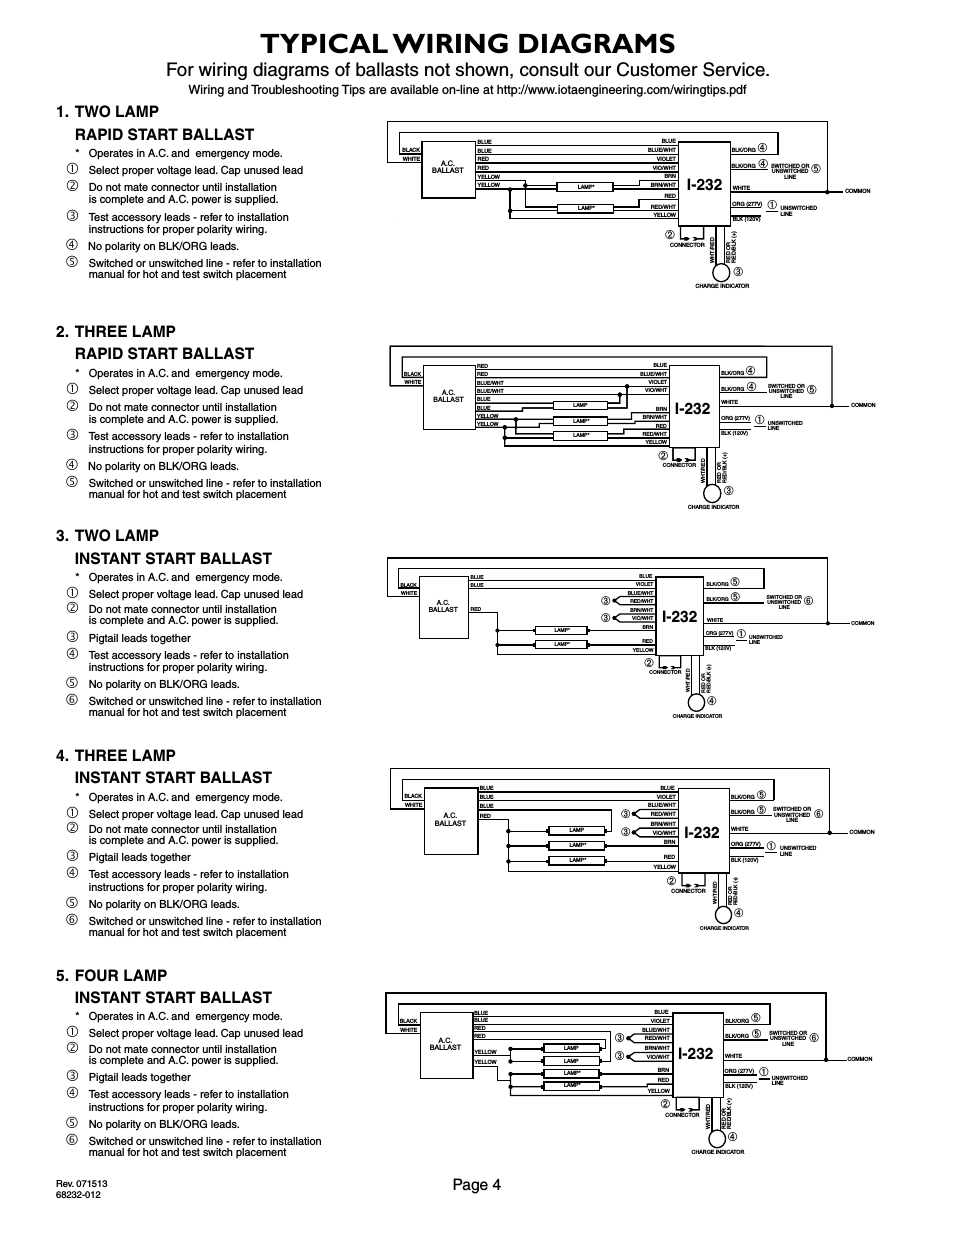 iota emergency ballast wiring diagram Download-ponent wiring diagrams for ballasts T12 T8 Ballast Wiring 15-o